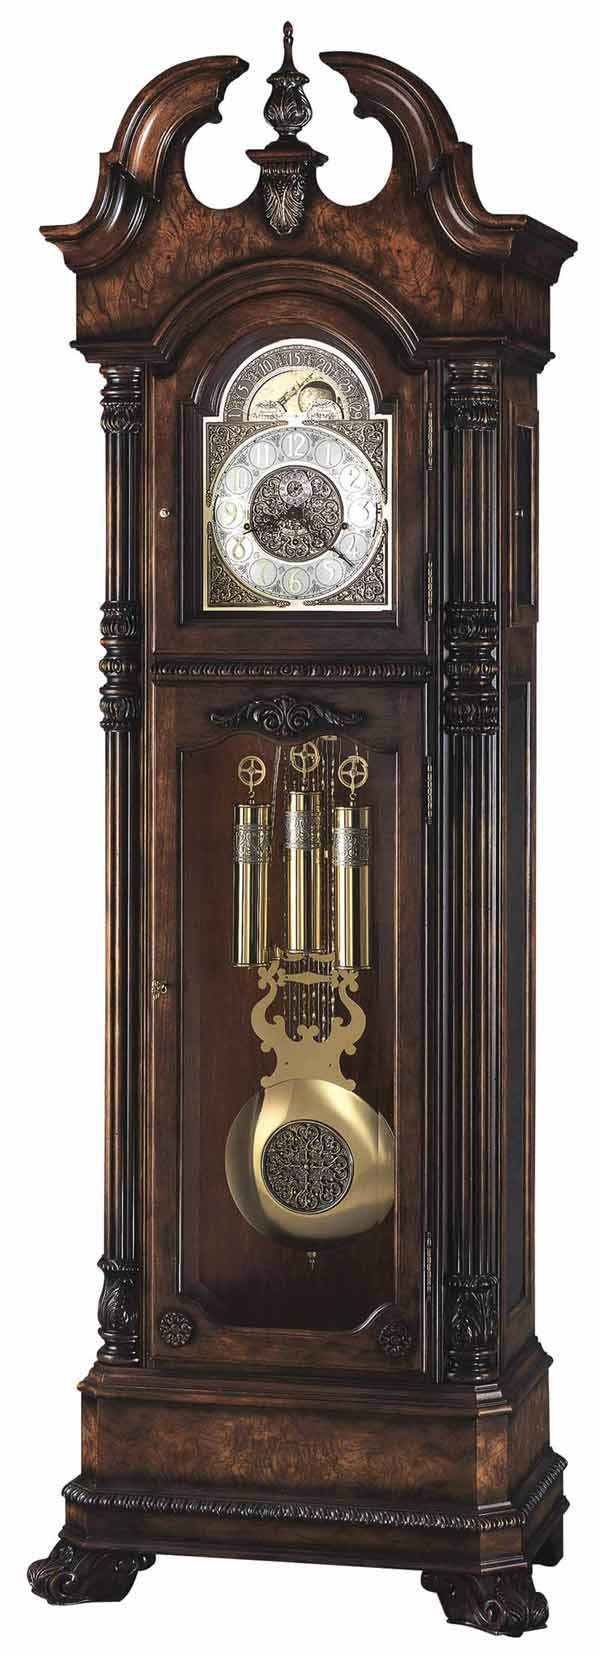 Howard Miller Reagan 610 999 Grandfather Clock